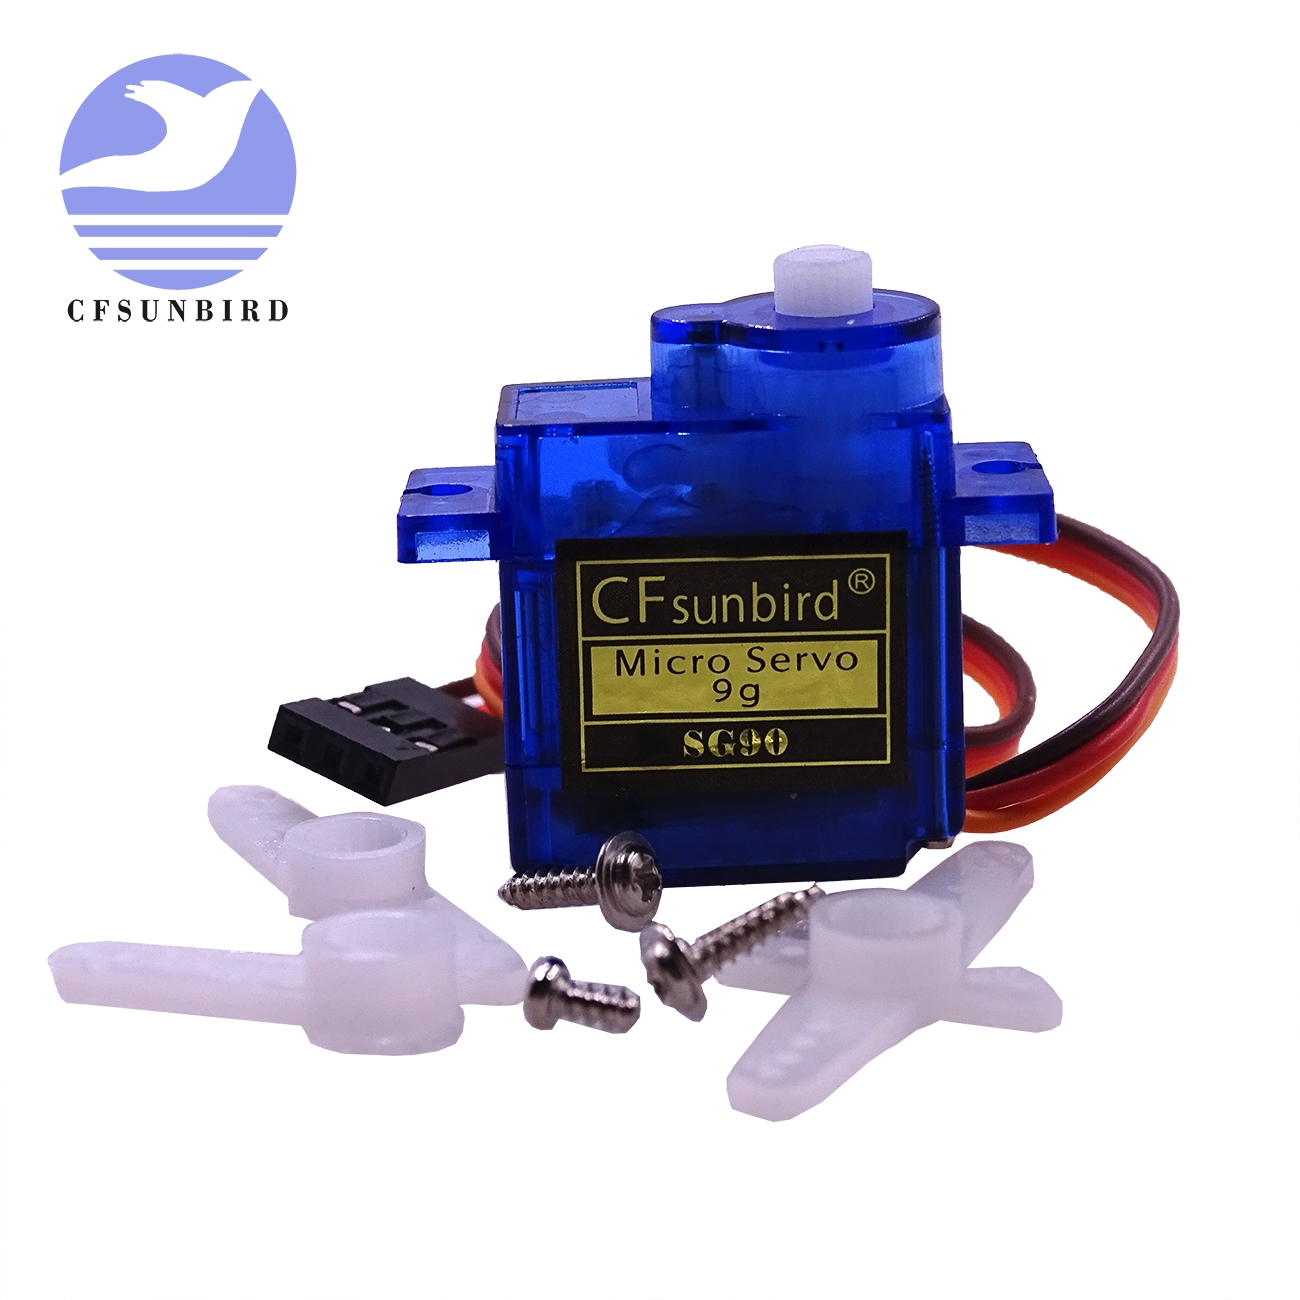 CFsunbird1pcs/lot SG90 9g Mini Micro Servo For RC For RC 250 450 Helicopter Airplane Car